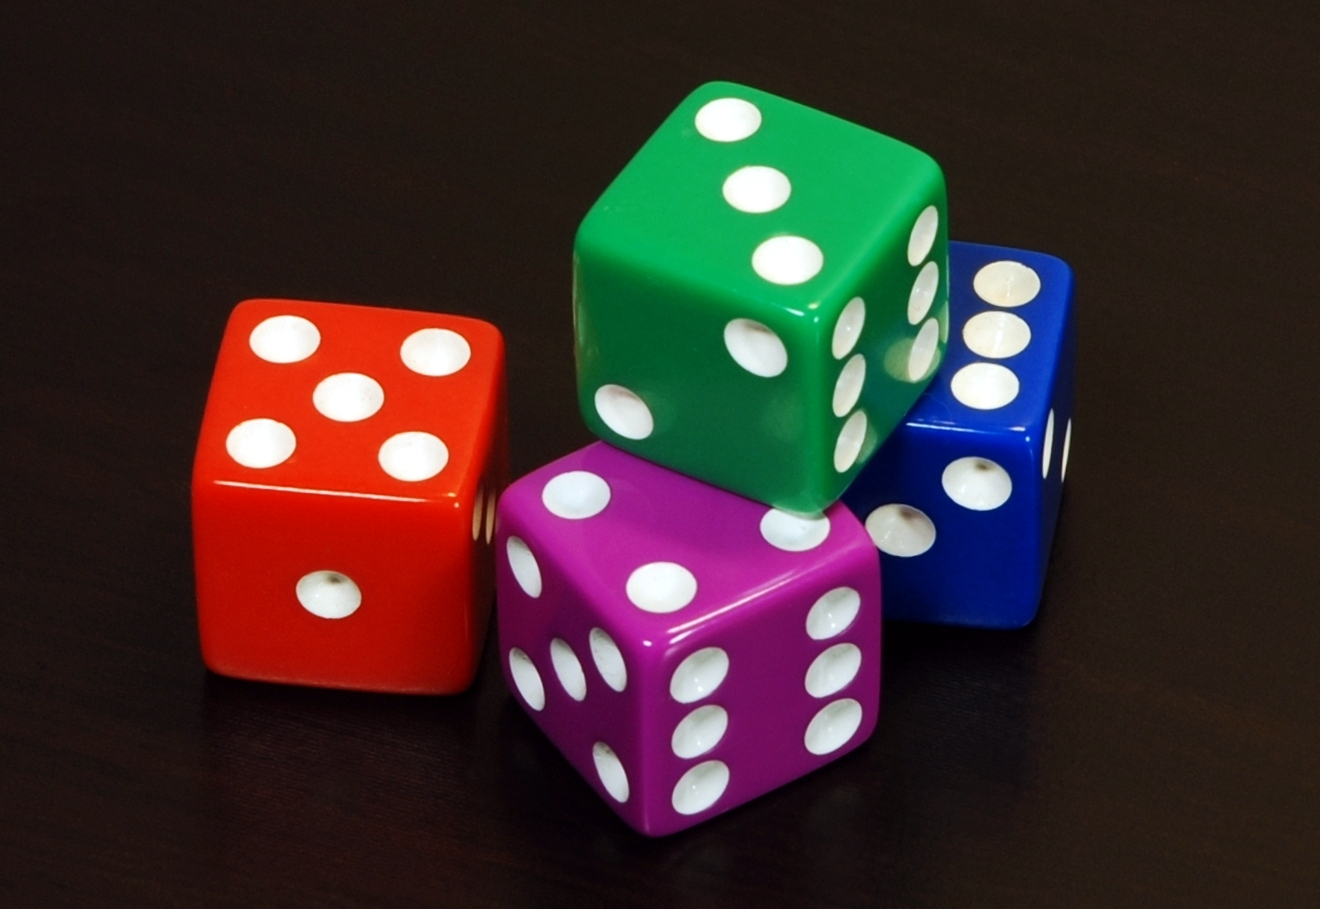 File:6sided dice.jpg - Wikimedia Commons